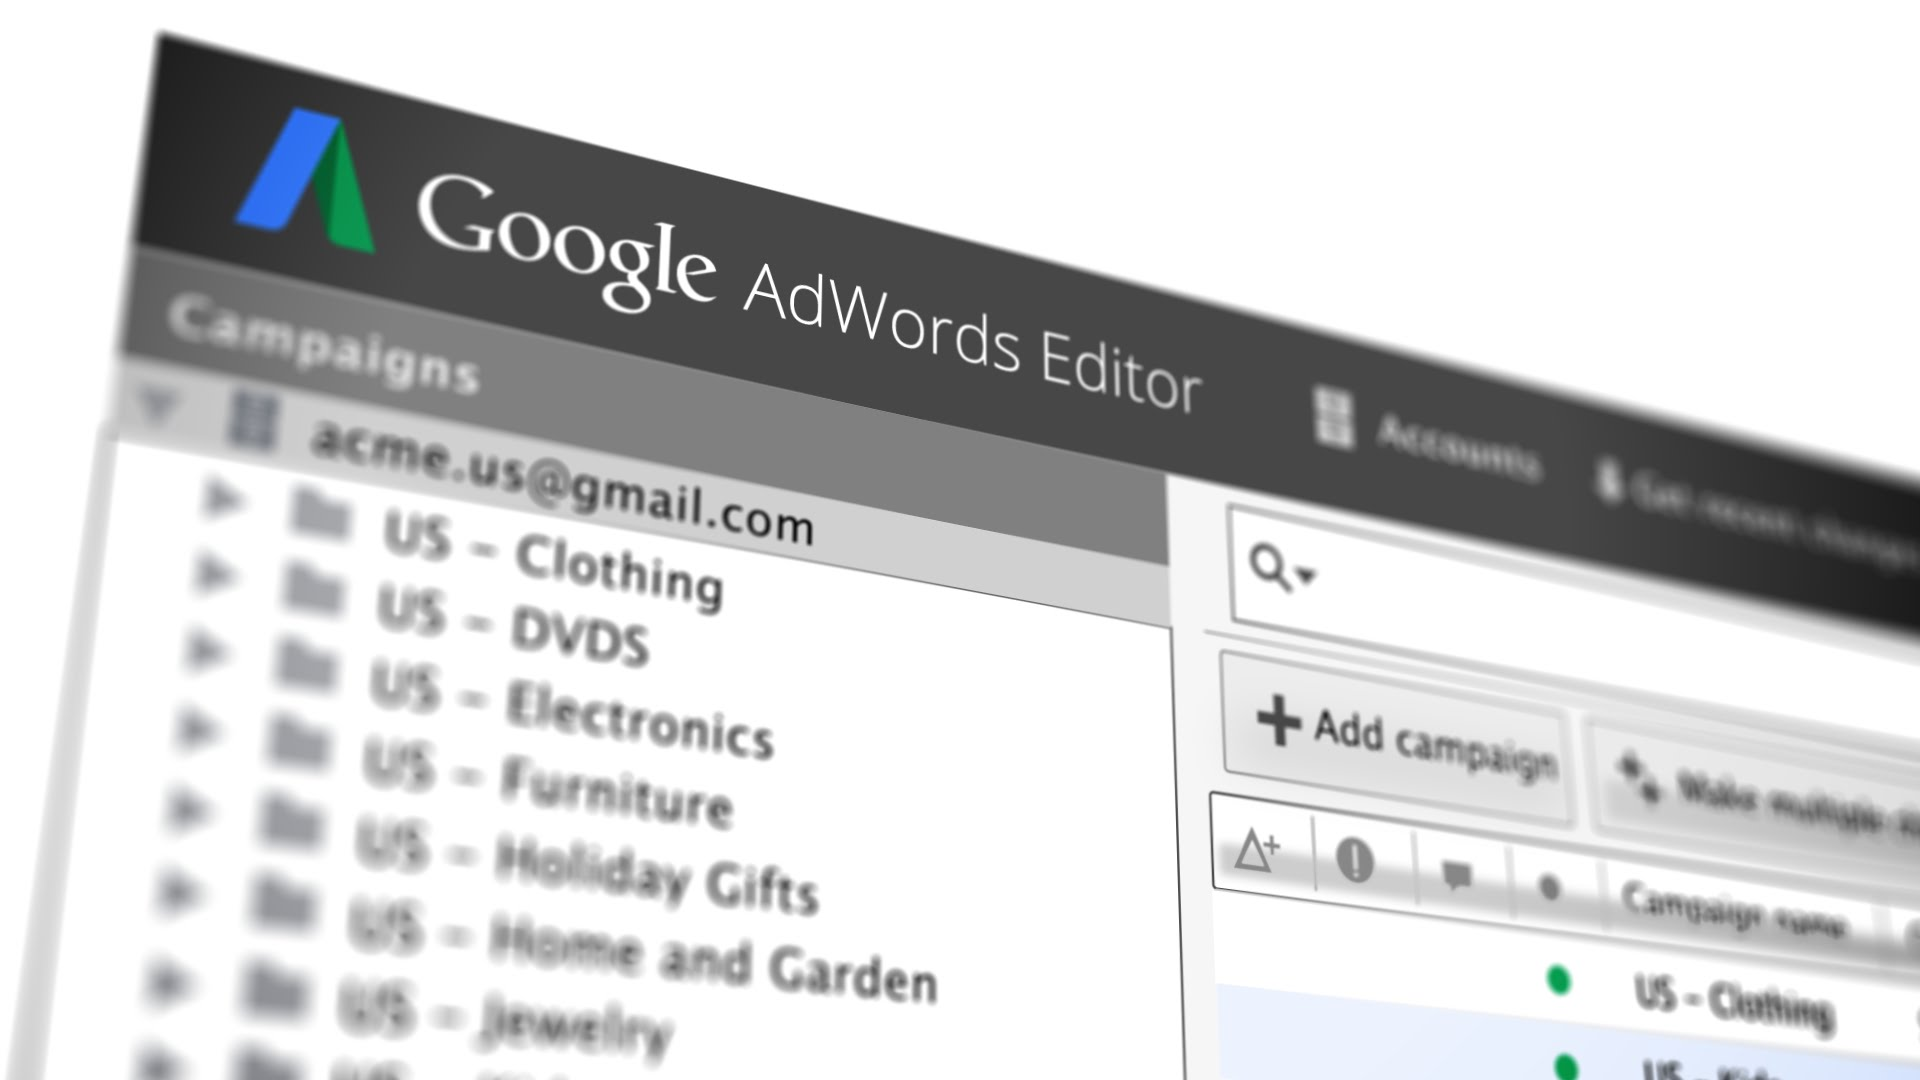 adwords-editor-11.0-min